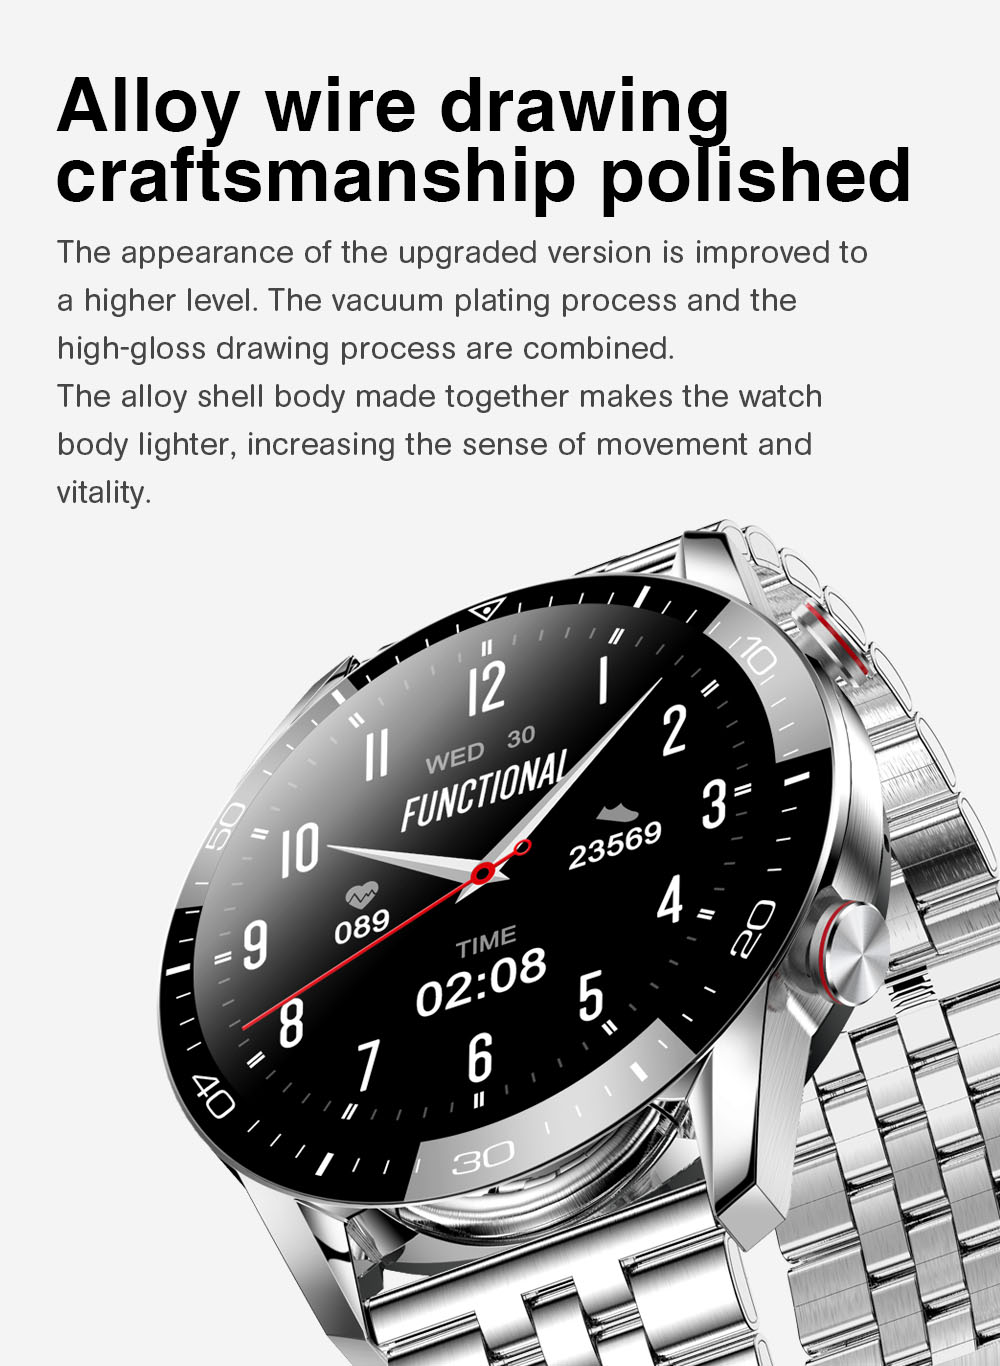 H0b9d9c5918e8404894d8285007fb4442q TK2-8 Smart Watch For Men Bluetooth Call IP68 Waterproof Blood Pressure Heart Rate Monitor New SmartWatch Sports Fitness Tracker